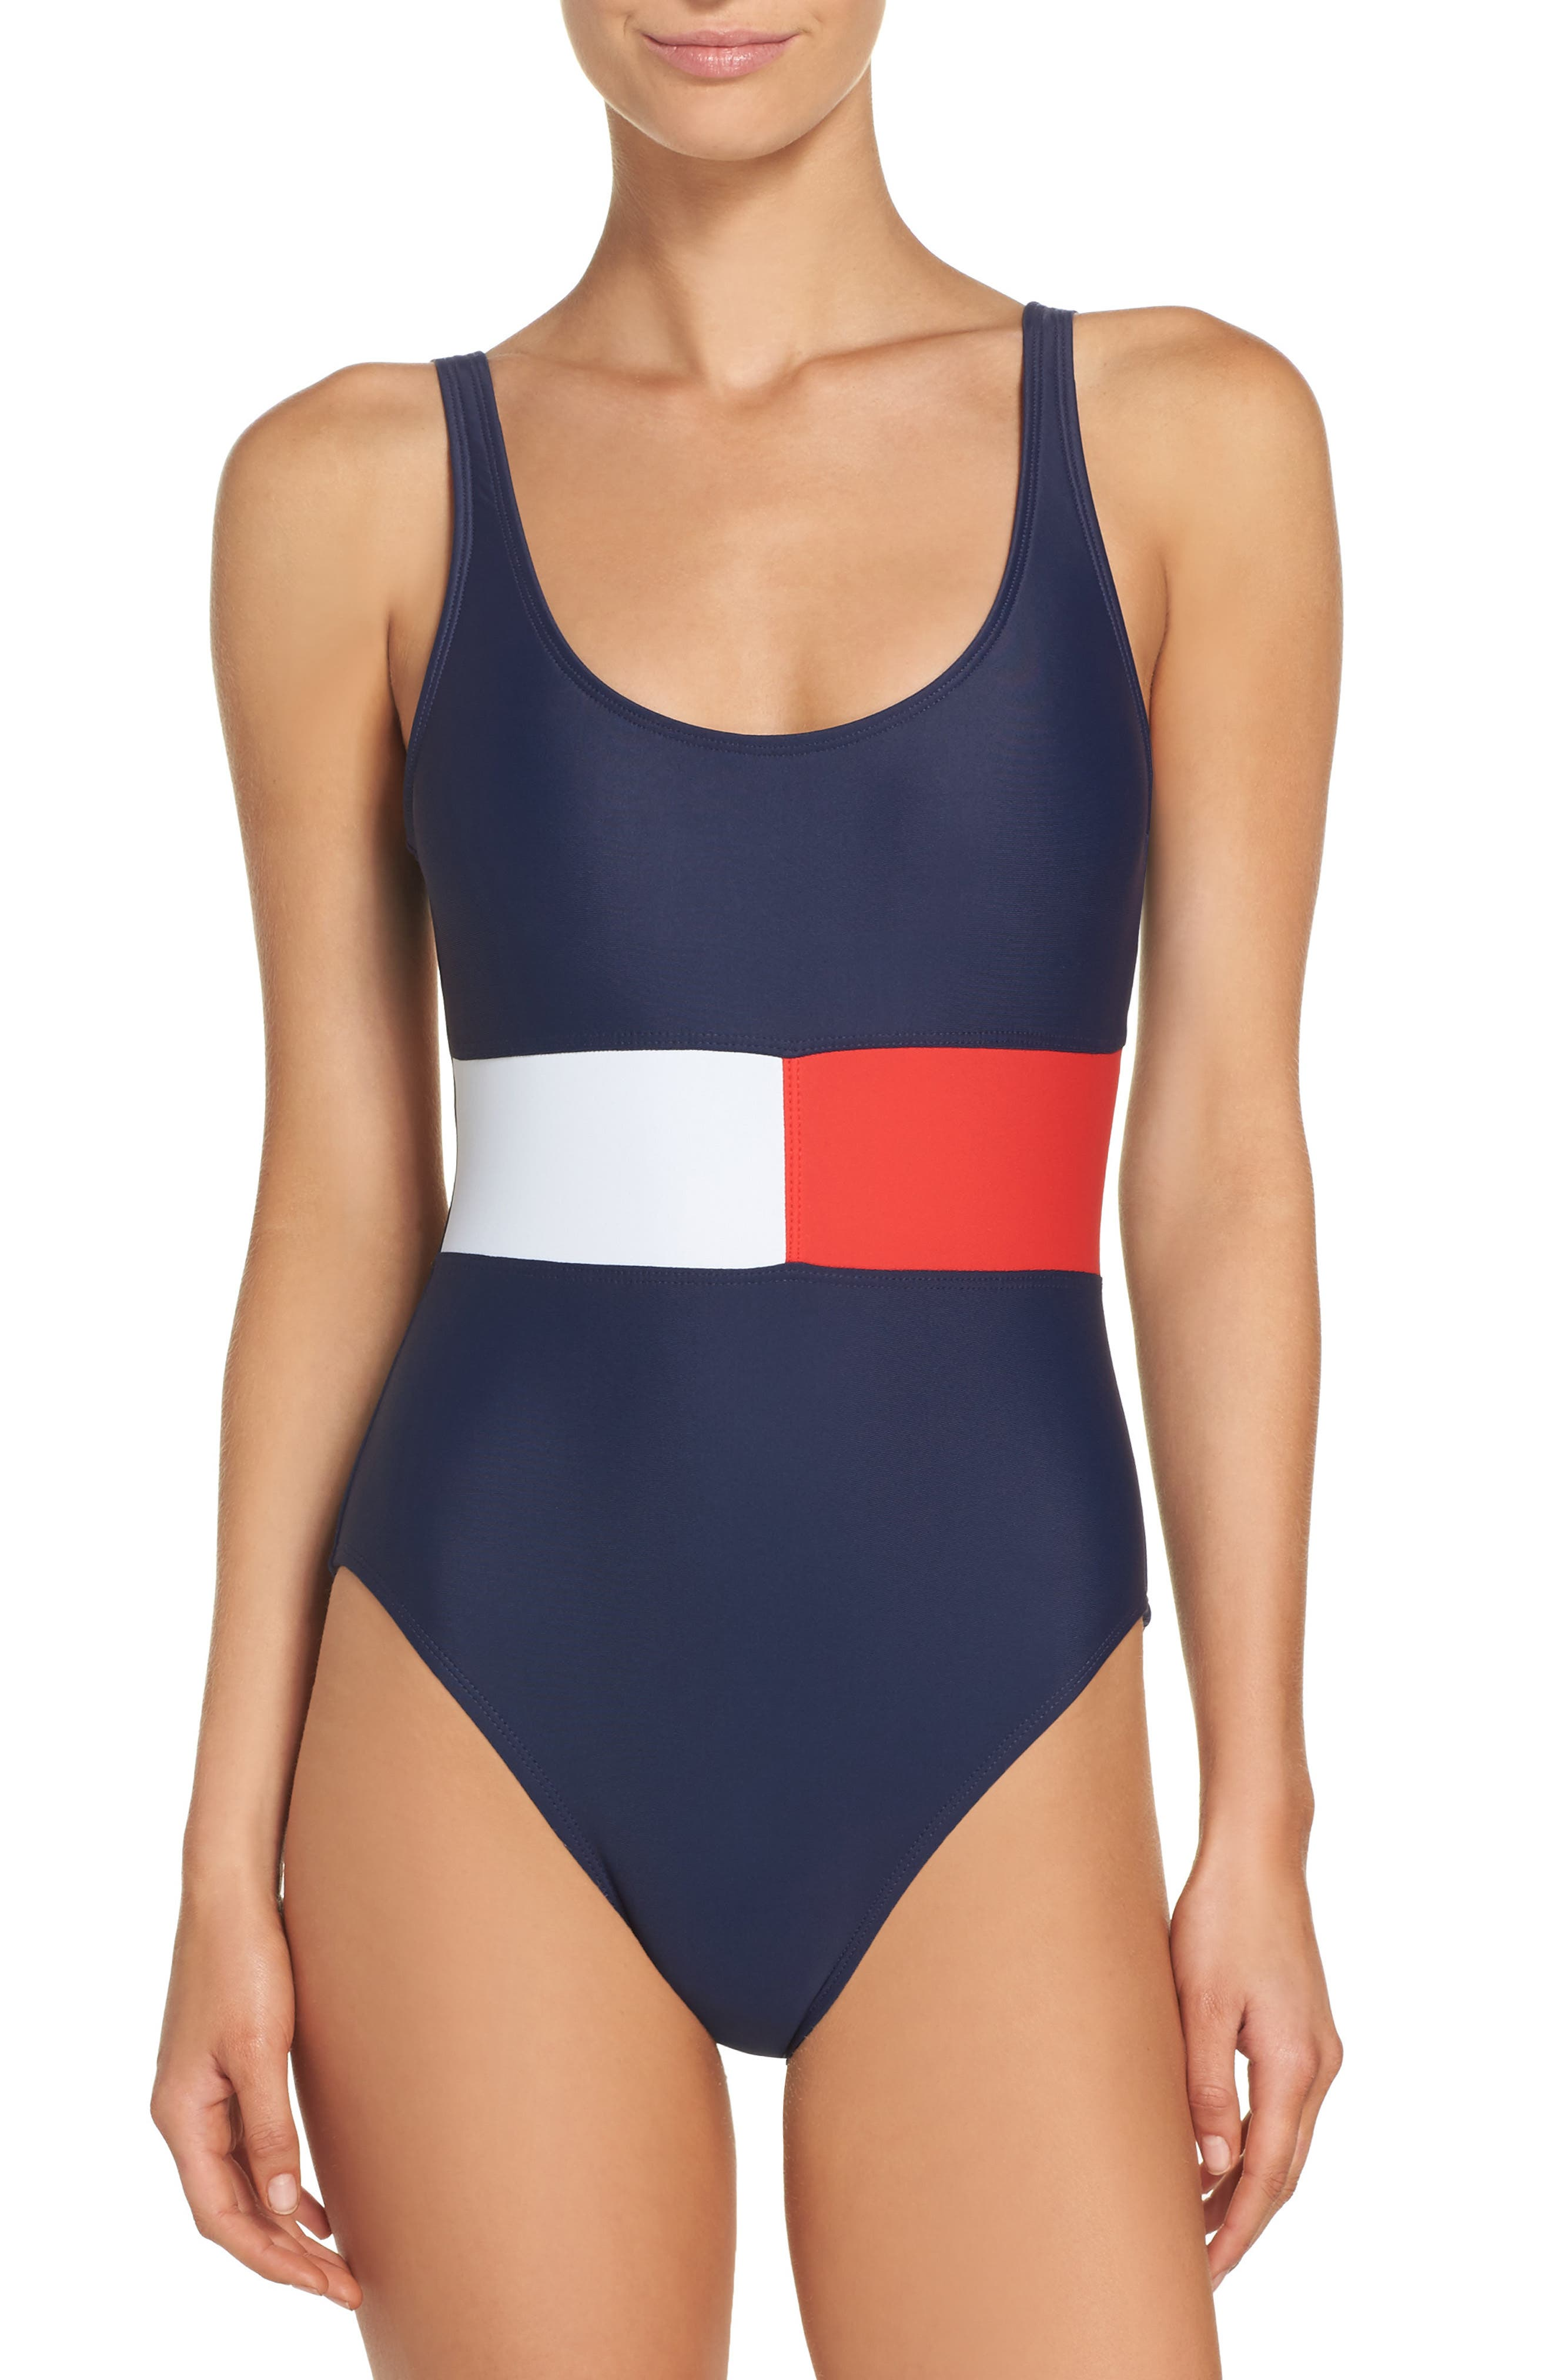 TOMMY HILFIGER, Flag One-Piece Swimsuit, Main thumbnail 1, color, 400